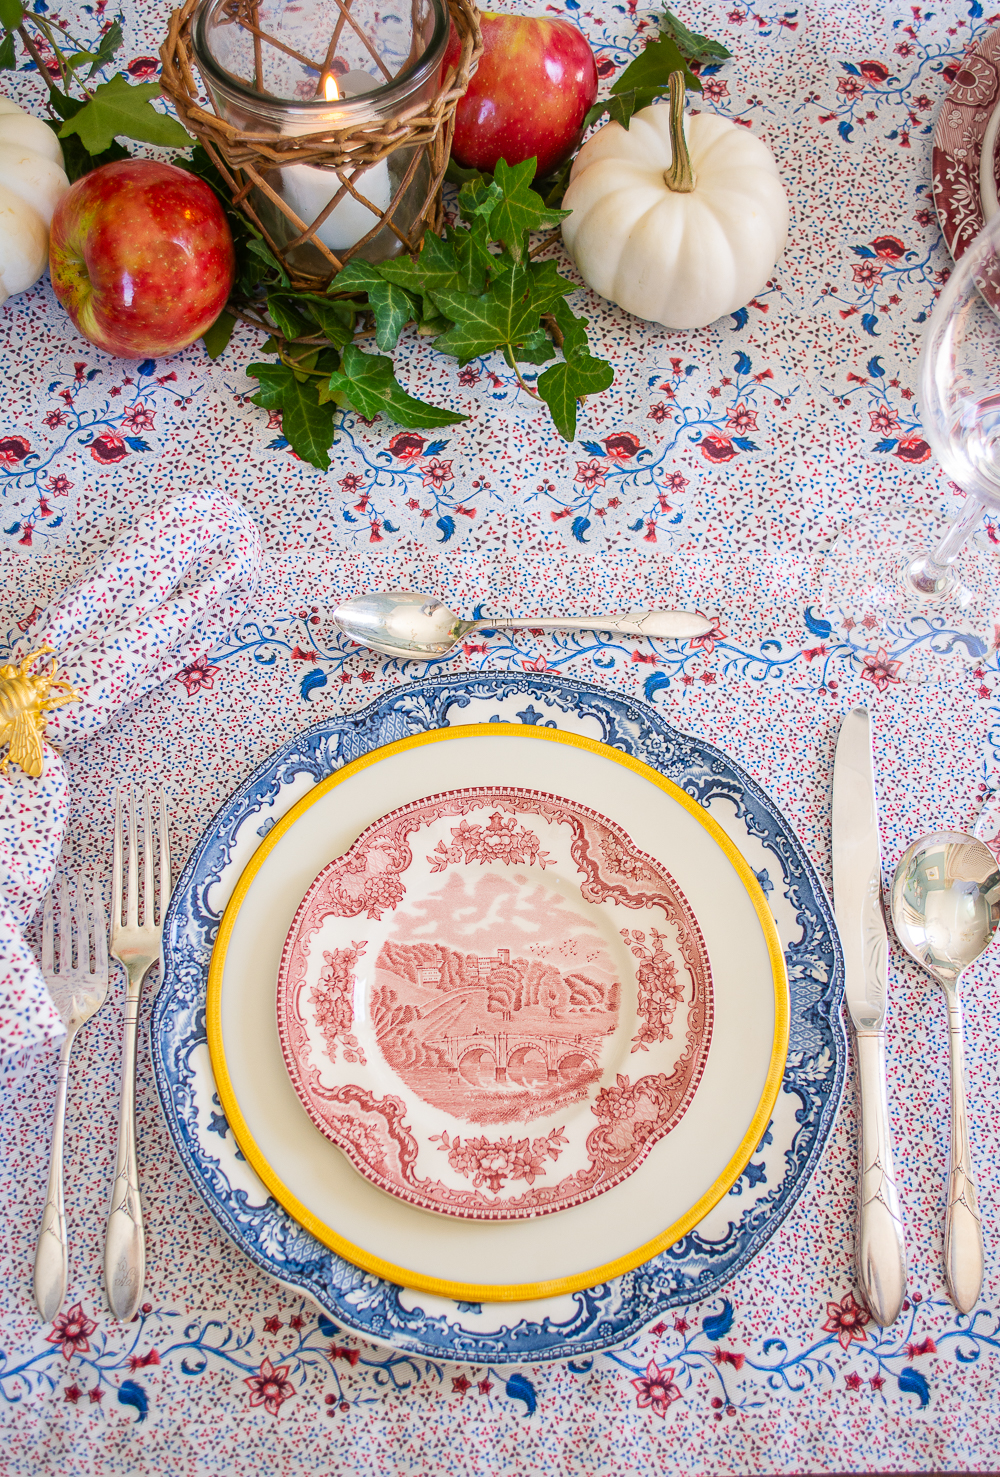 Fall table place setting with Johnson Bros transferware in red and blue on placemat from Sarah Flint